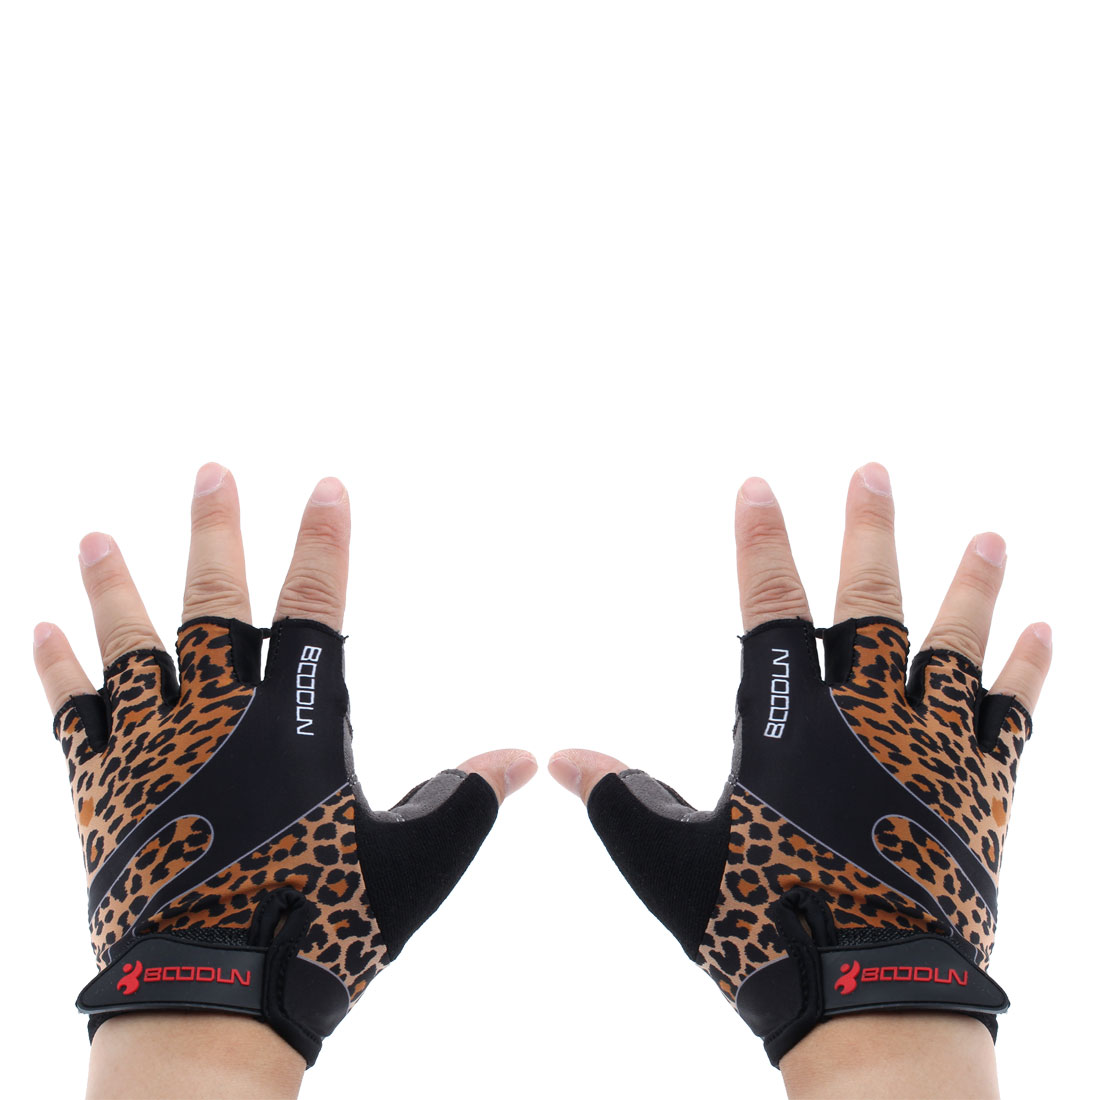 BOODUN Authorized Polyester Exercise Sports Lifting Training Bodybuilding Wrist Protector Half Finger Fitness Gloves Leopard Print M Pair